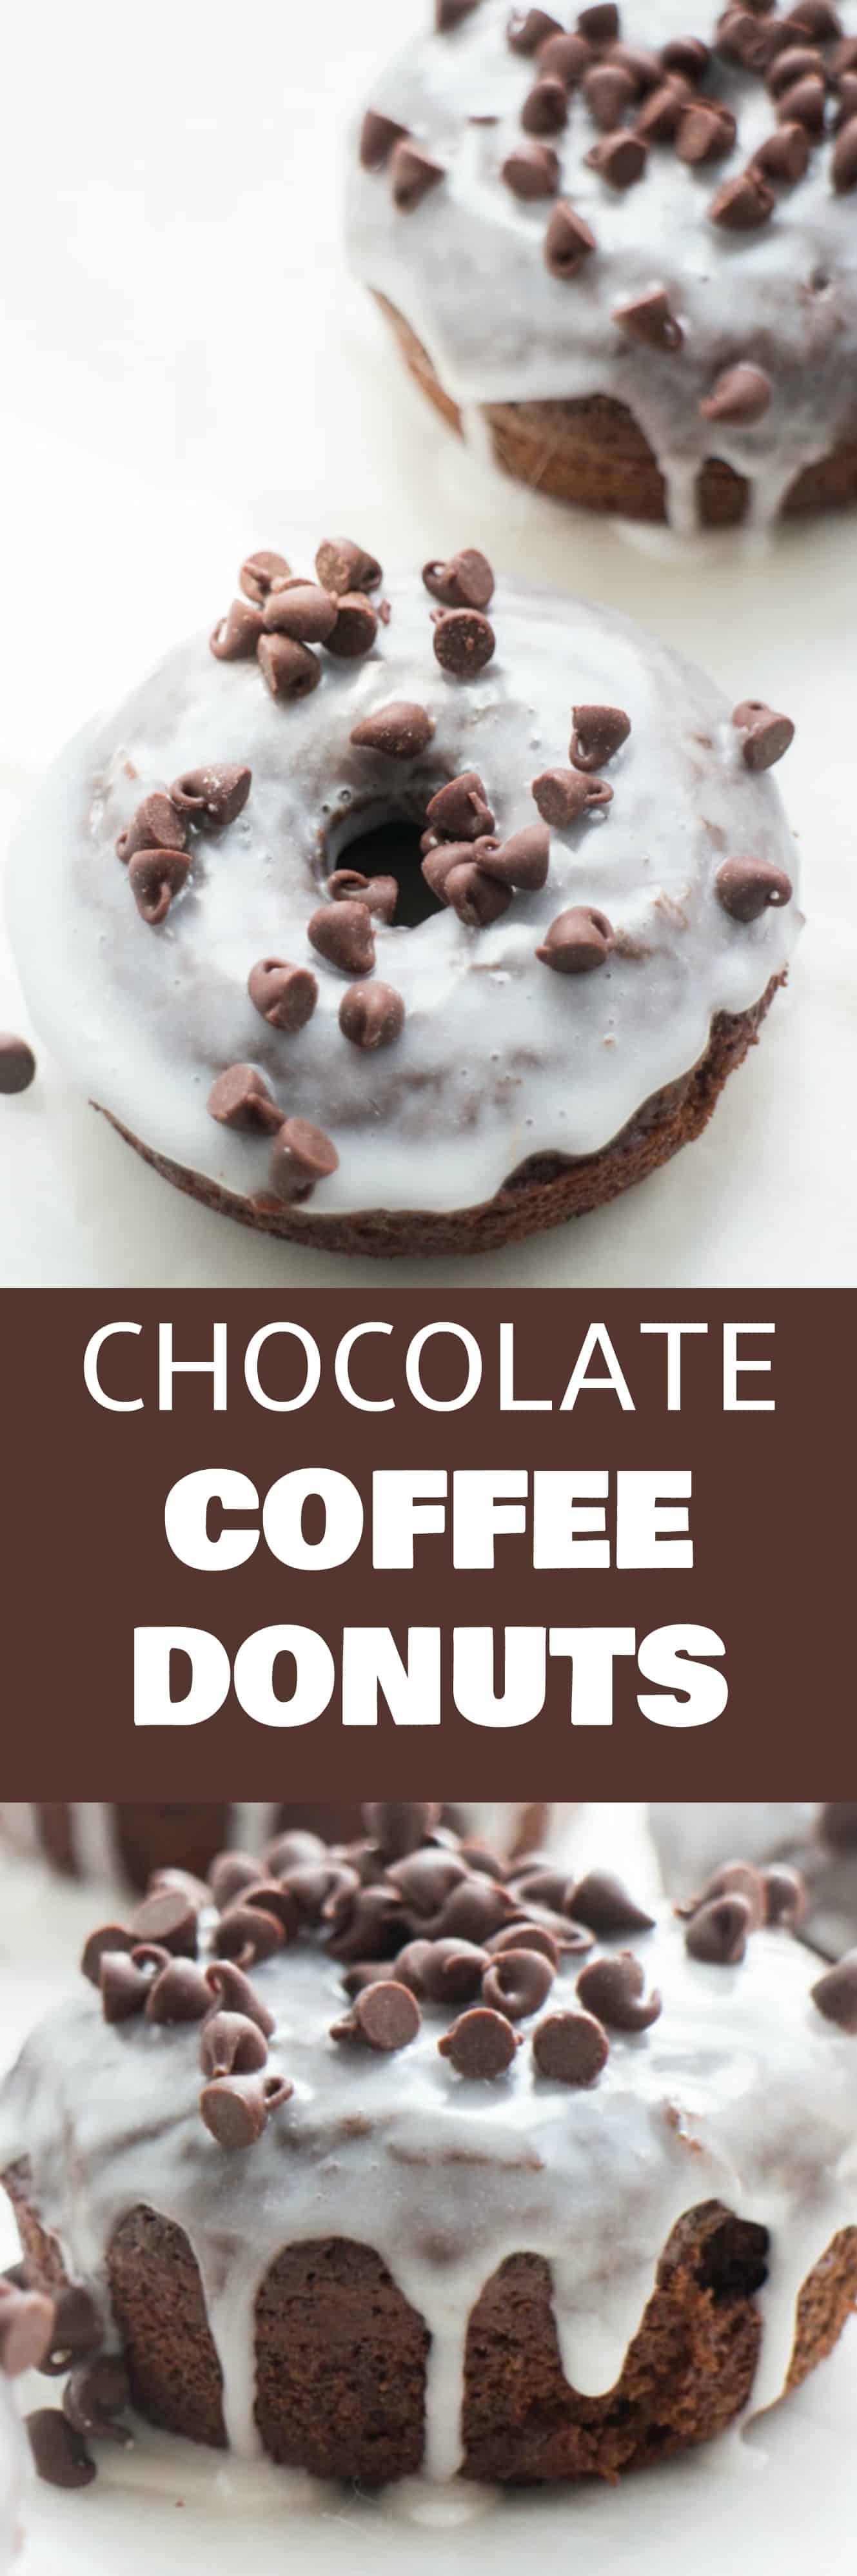 Easy to make Chocolate Coffee Donuts with Vanilla Chocolate Chip Frosting! This donut recipe is a family favorite! Everyone thinks they're delicious!